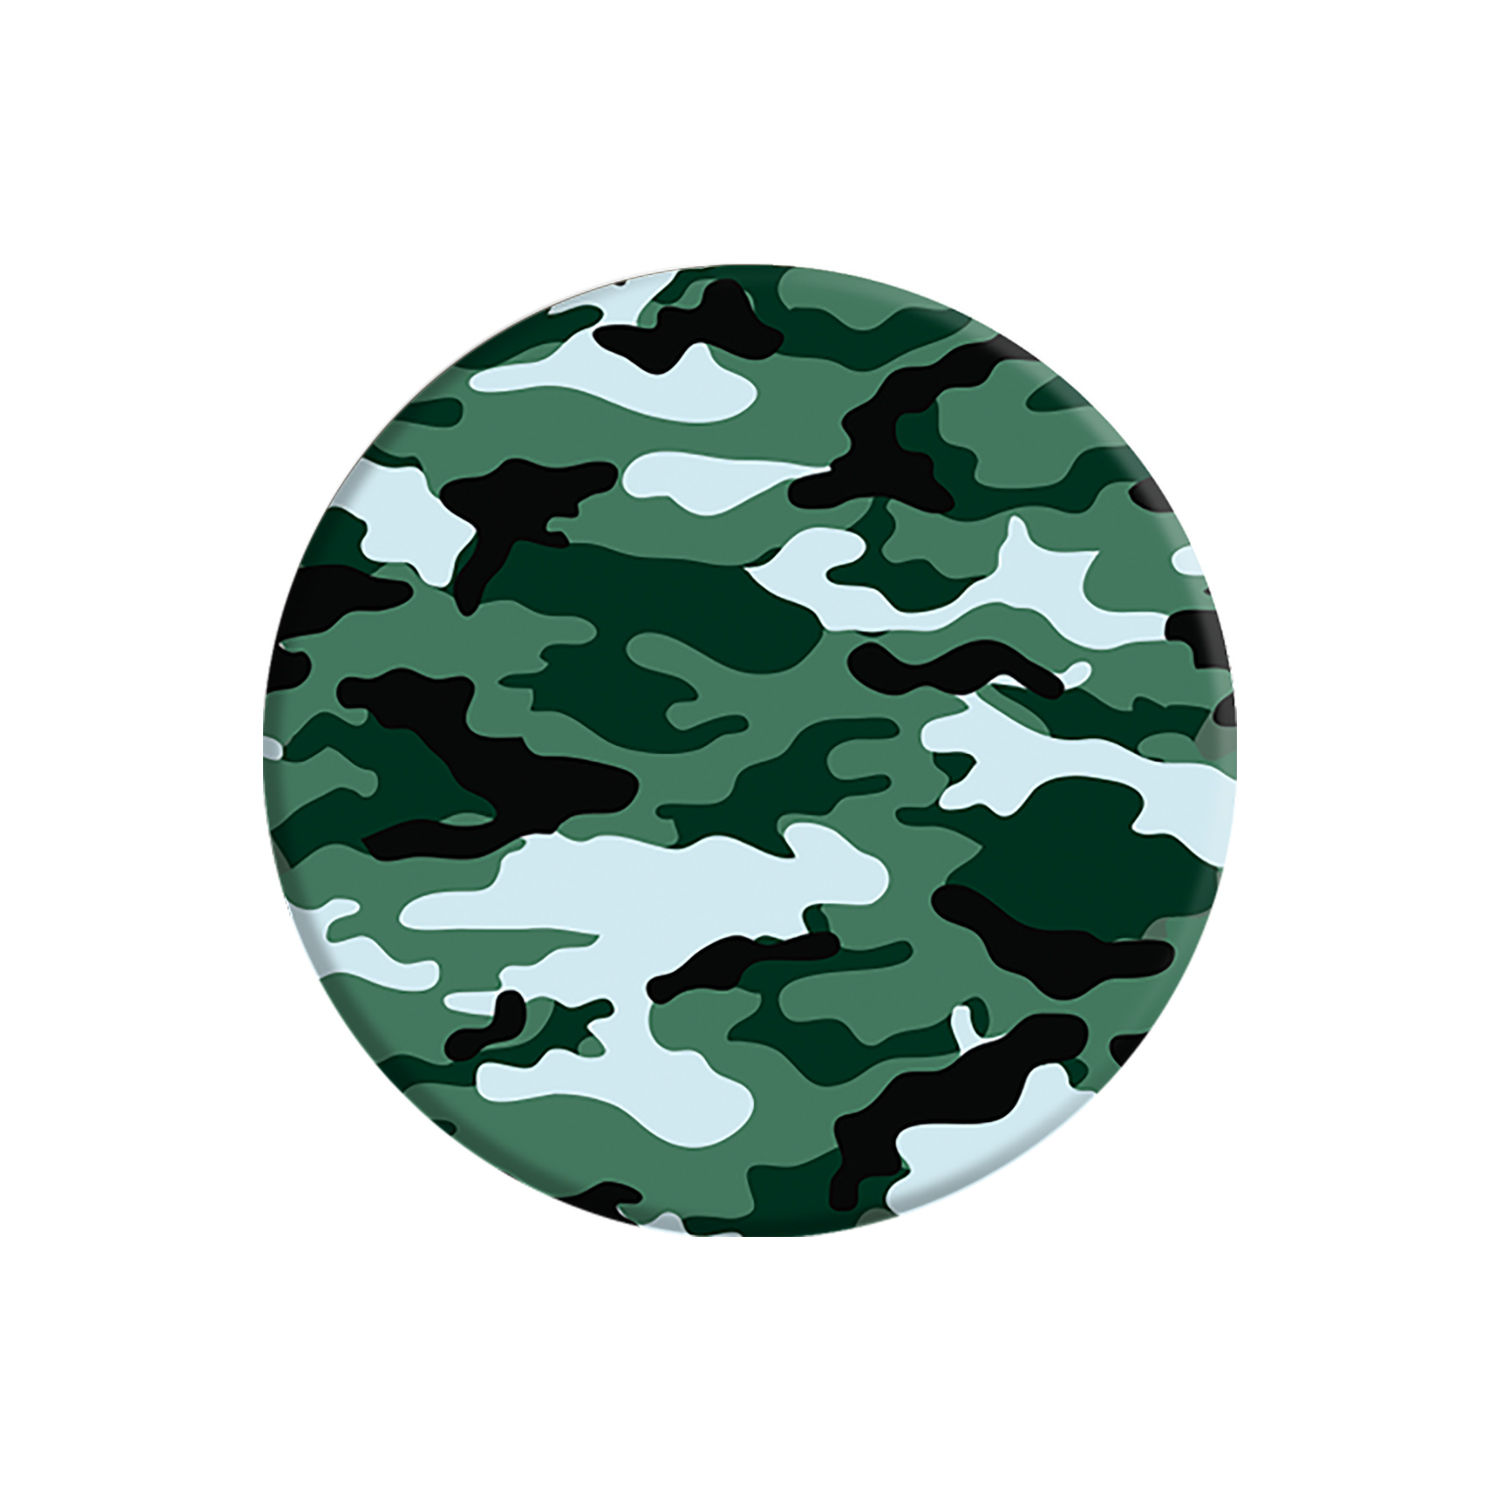 Popsockets Dark Green Camo Expanding Stand and Grip